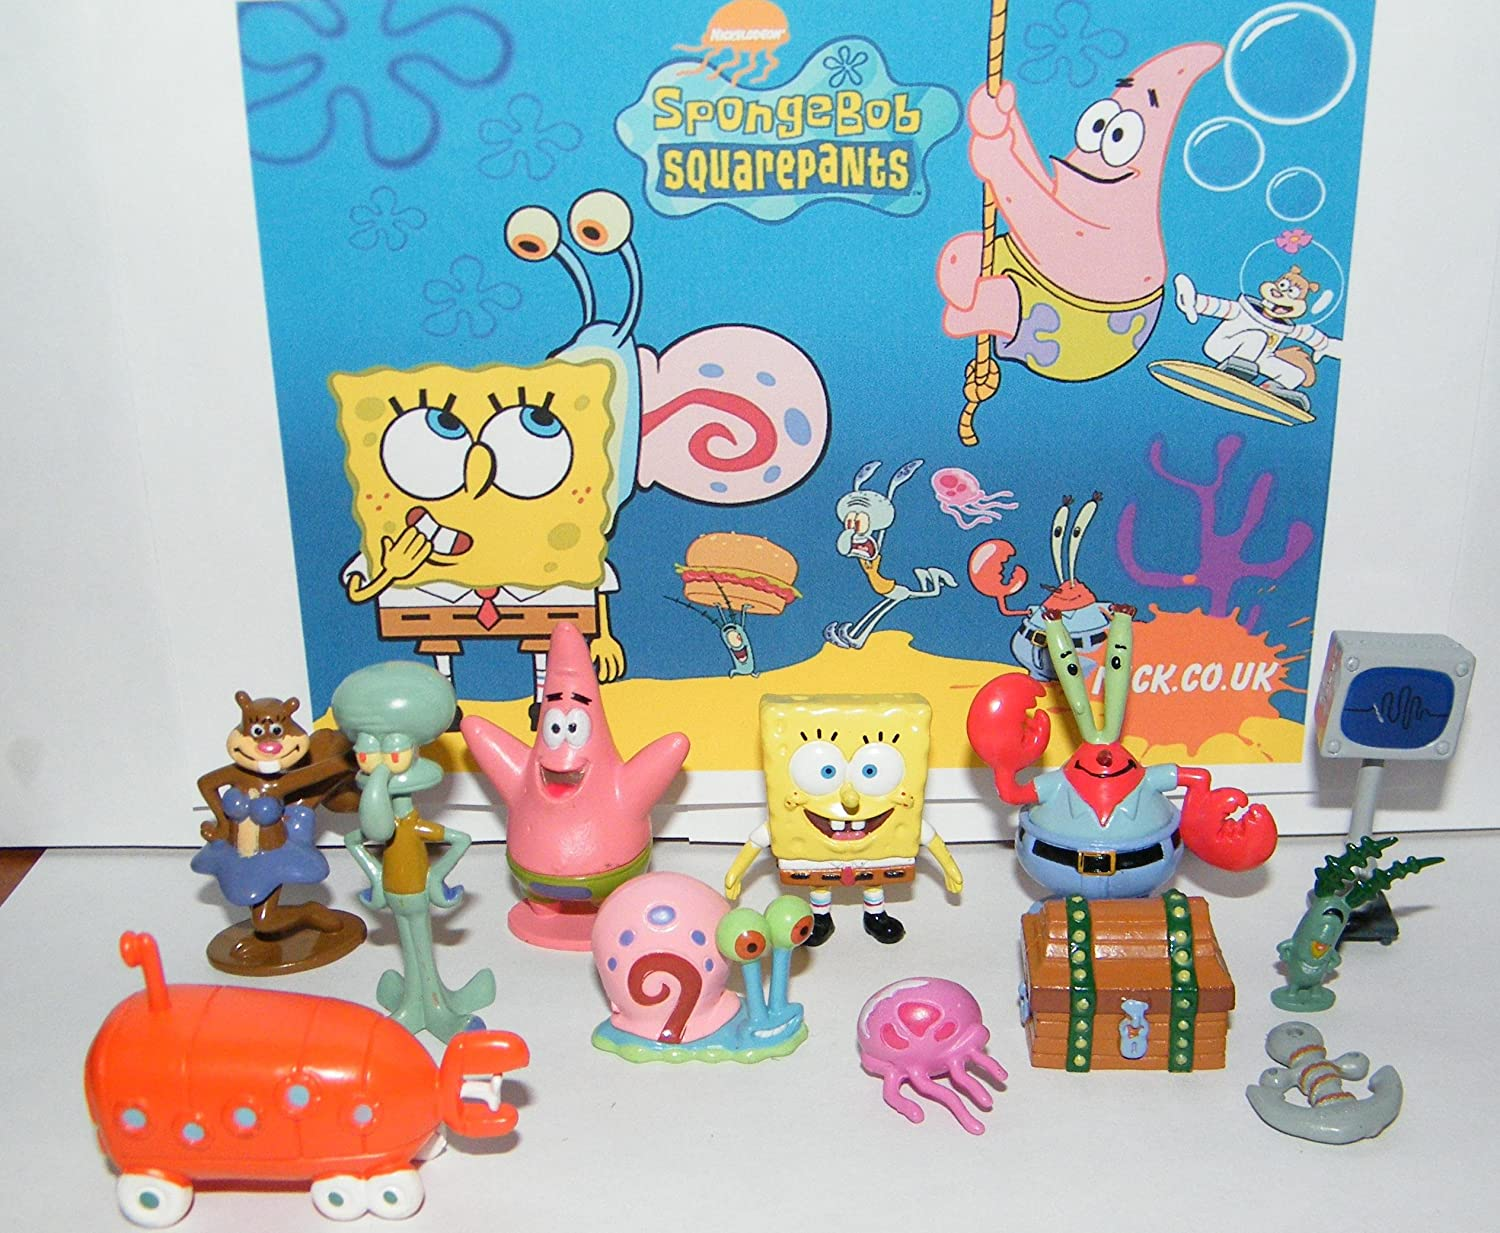 Spongebob and Friends Mini Toy Figure Playset of 12 with Mr. Krabs, Computer Wife Karen, Treasure Chest, Patrick, Jelly Fish, Anchor and Much More! BB Inc